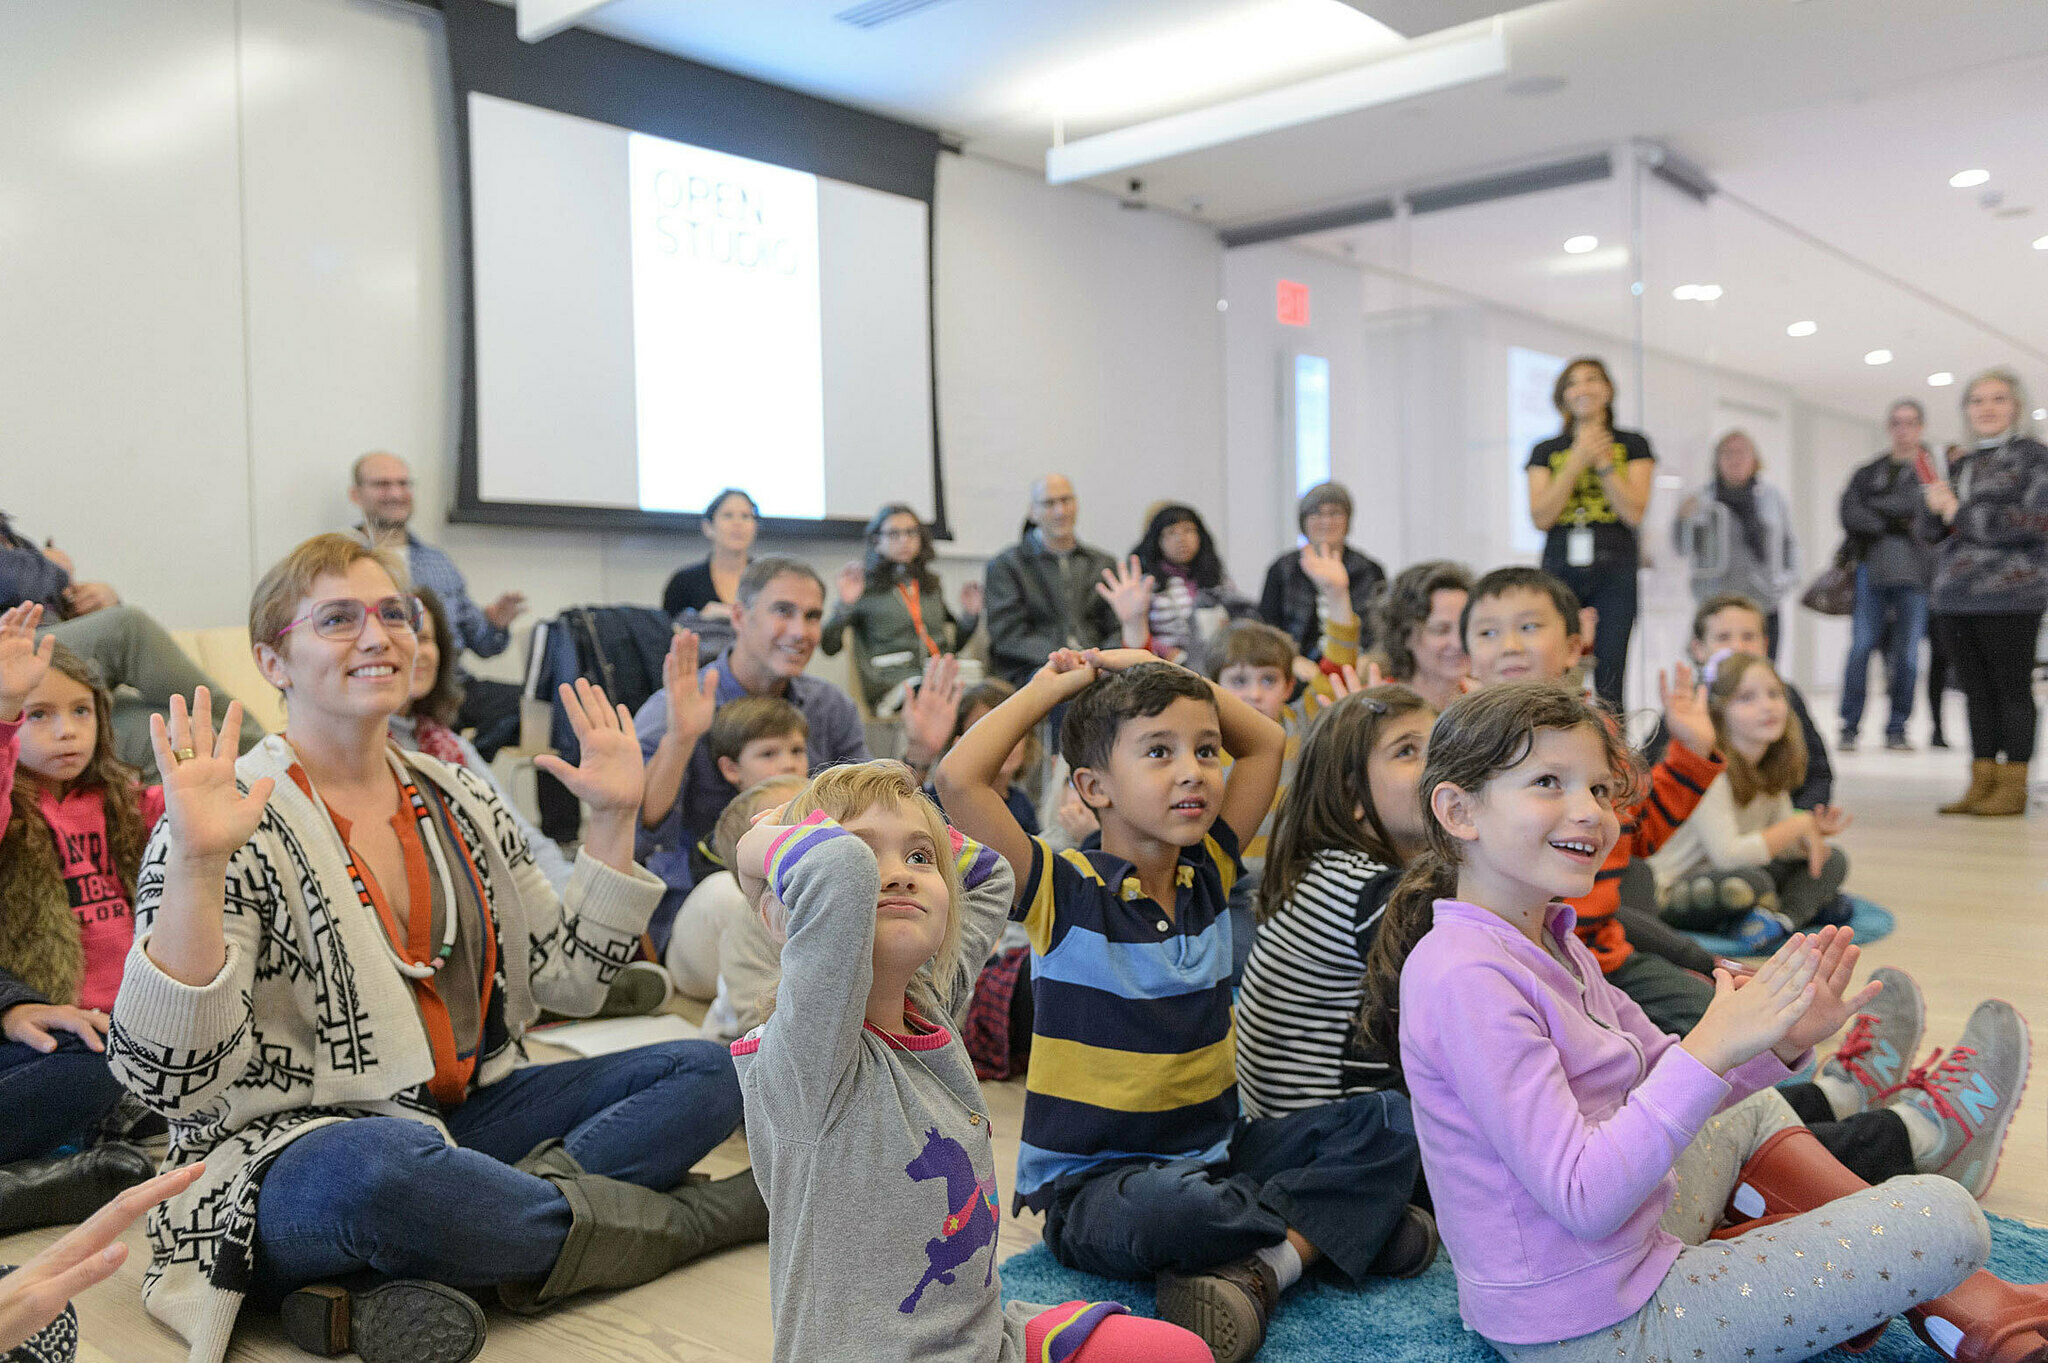 Families raise their hands in an Open Studio workshop led by artist Cooper-Moore.